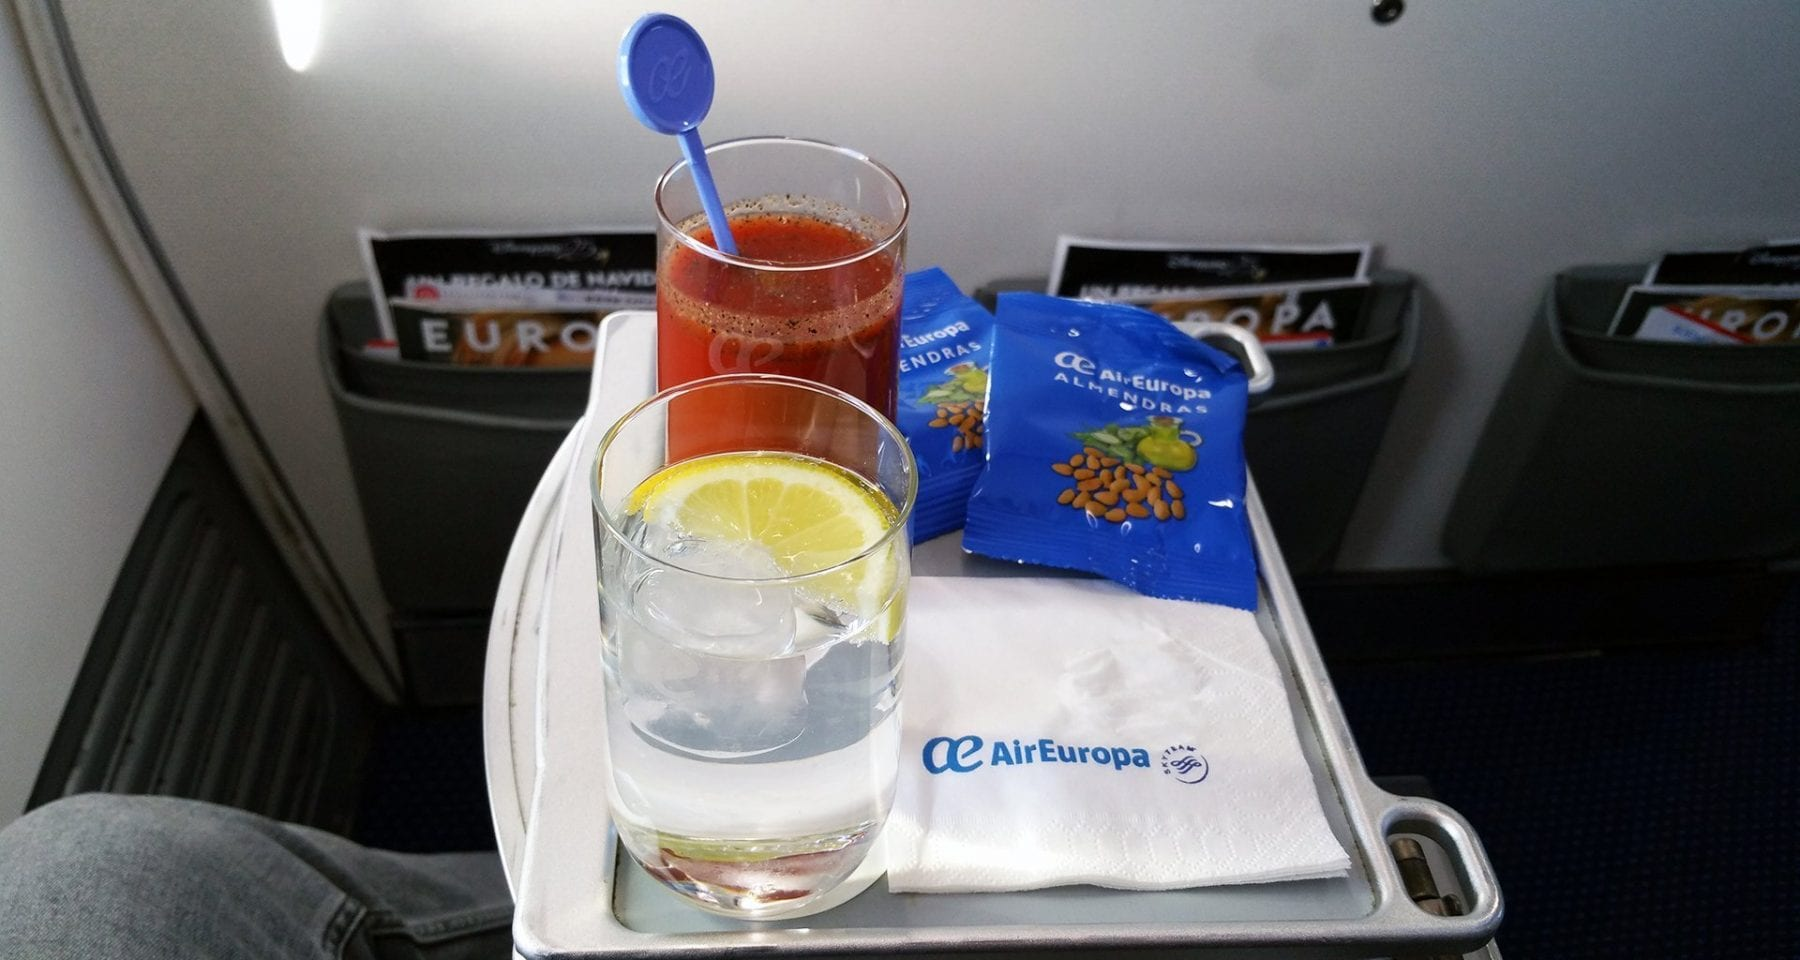 air europa business class welcome drink